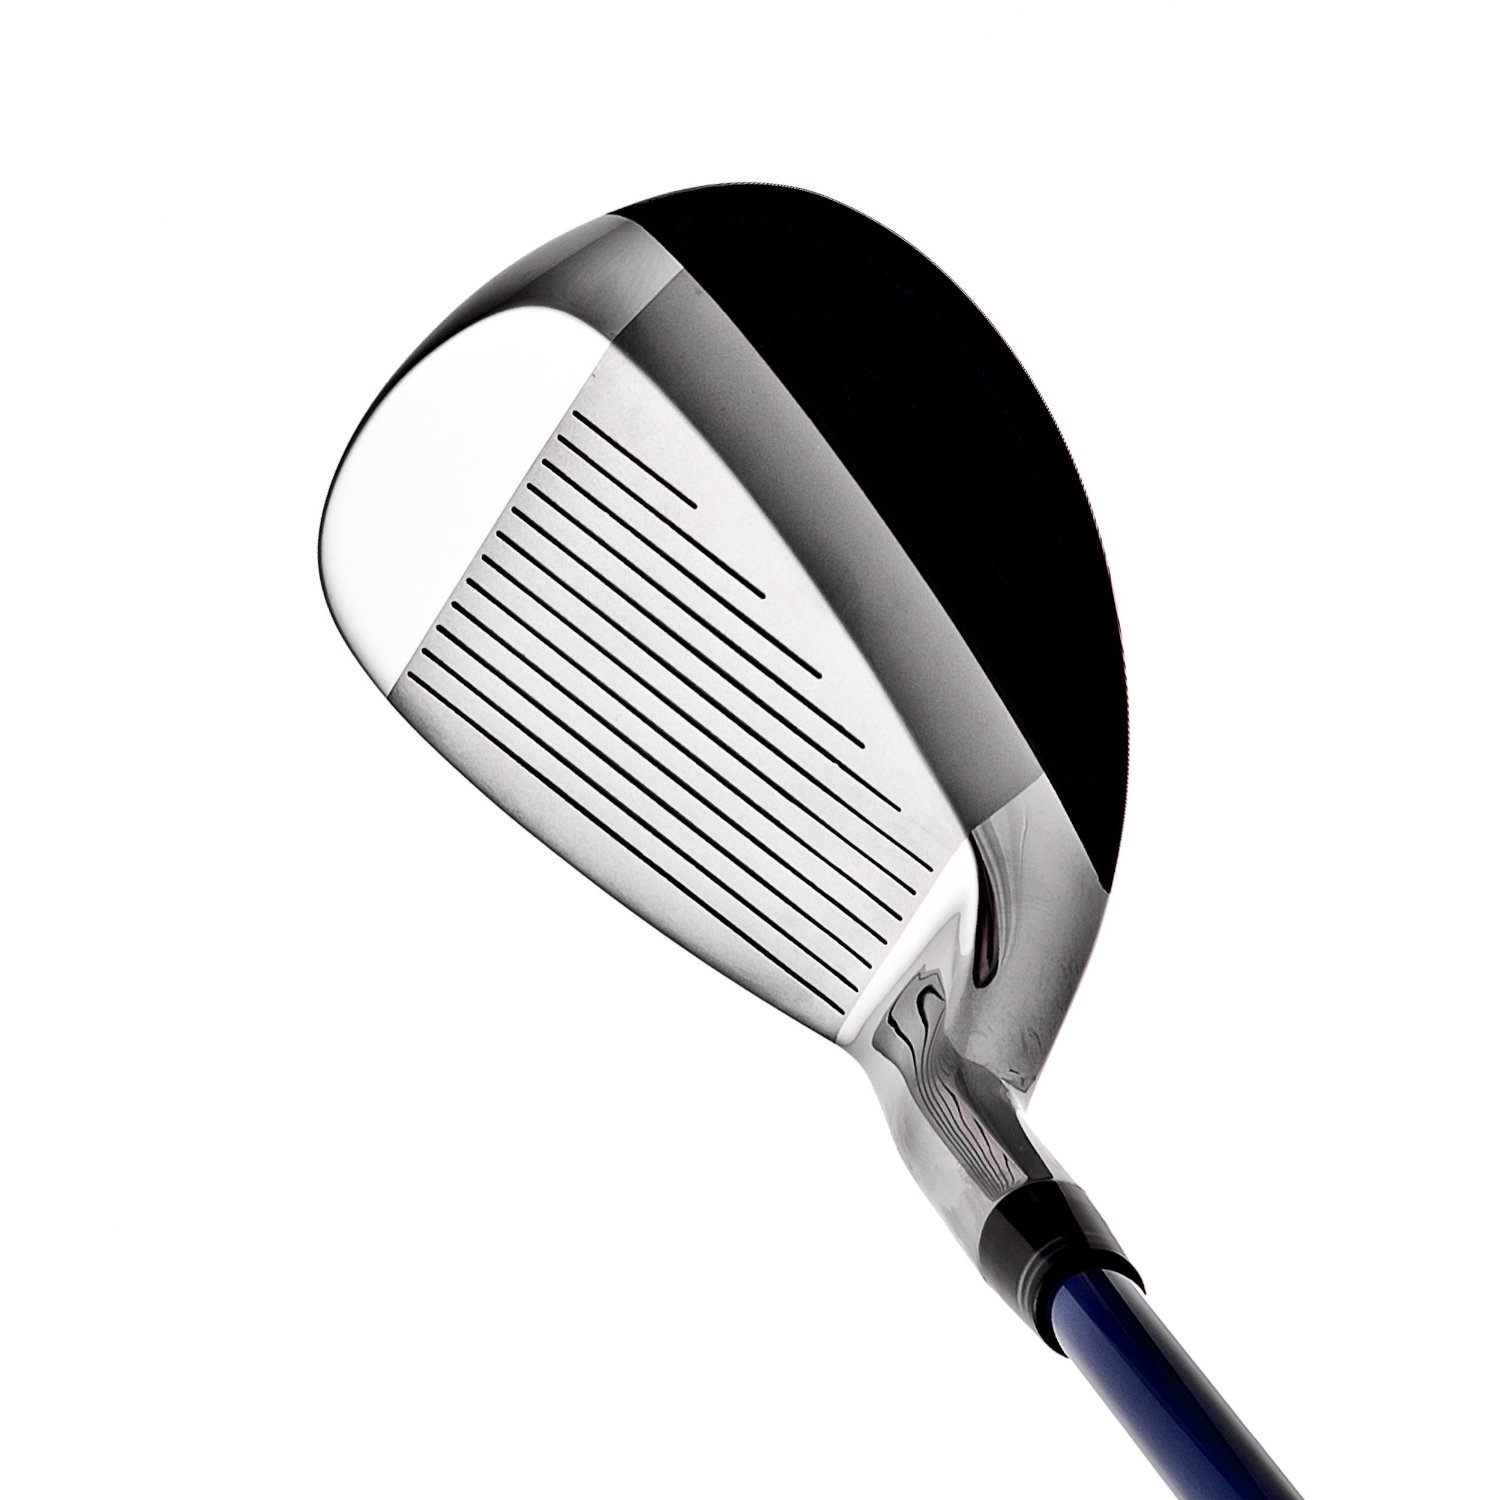 The Perfect Club Hybrid Sand Amp Lob Wedge The Most